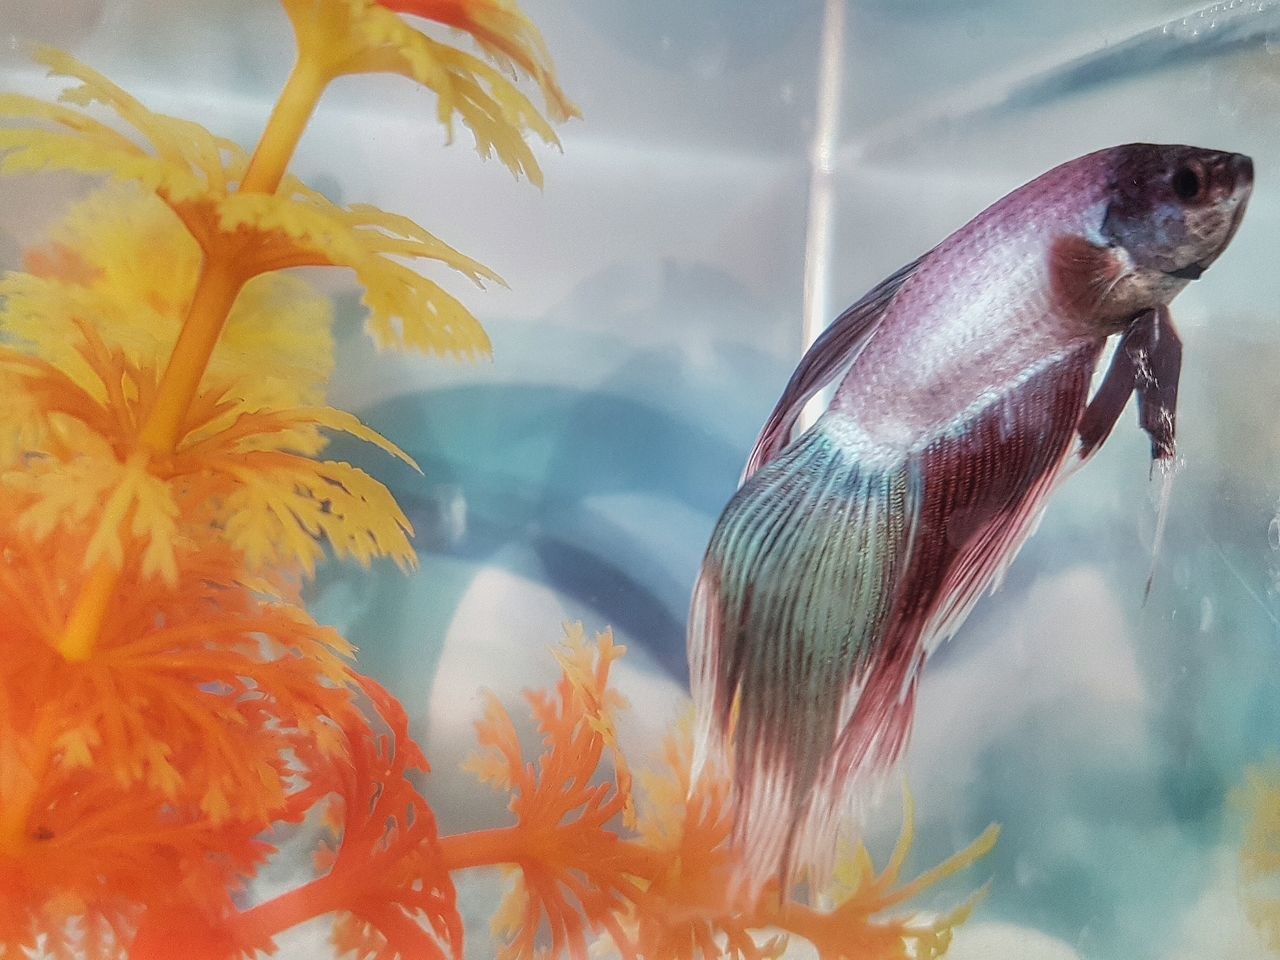 Fishsitting over... Fish Aquarium Gone Home Loner Life Aquarium Life Living In A Box Pastel Colourful Aquatic Plant Just Keep Swimming Colour Version Hdr Edit Fine Art Photography Showcase July Colour Of Life